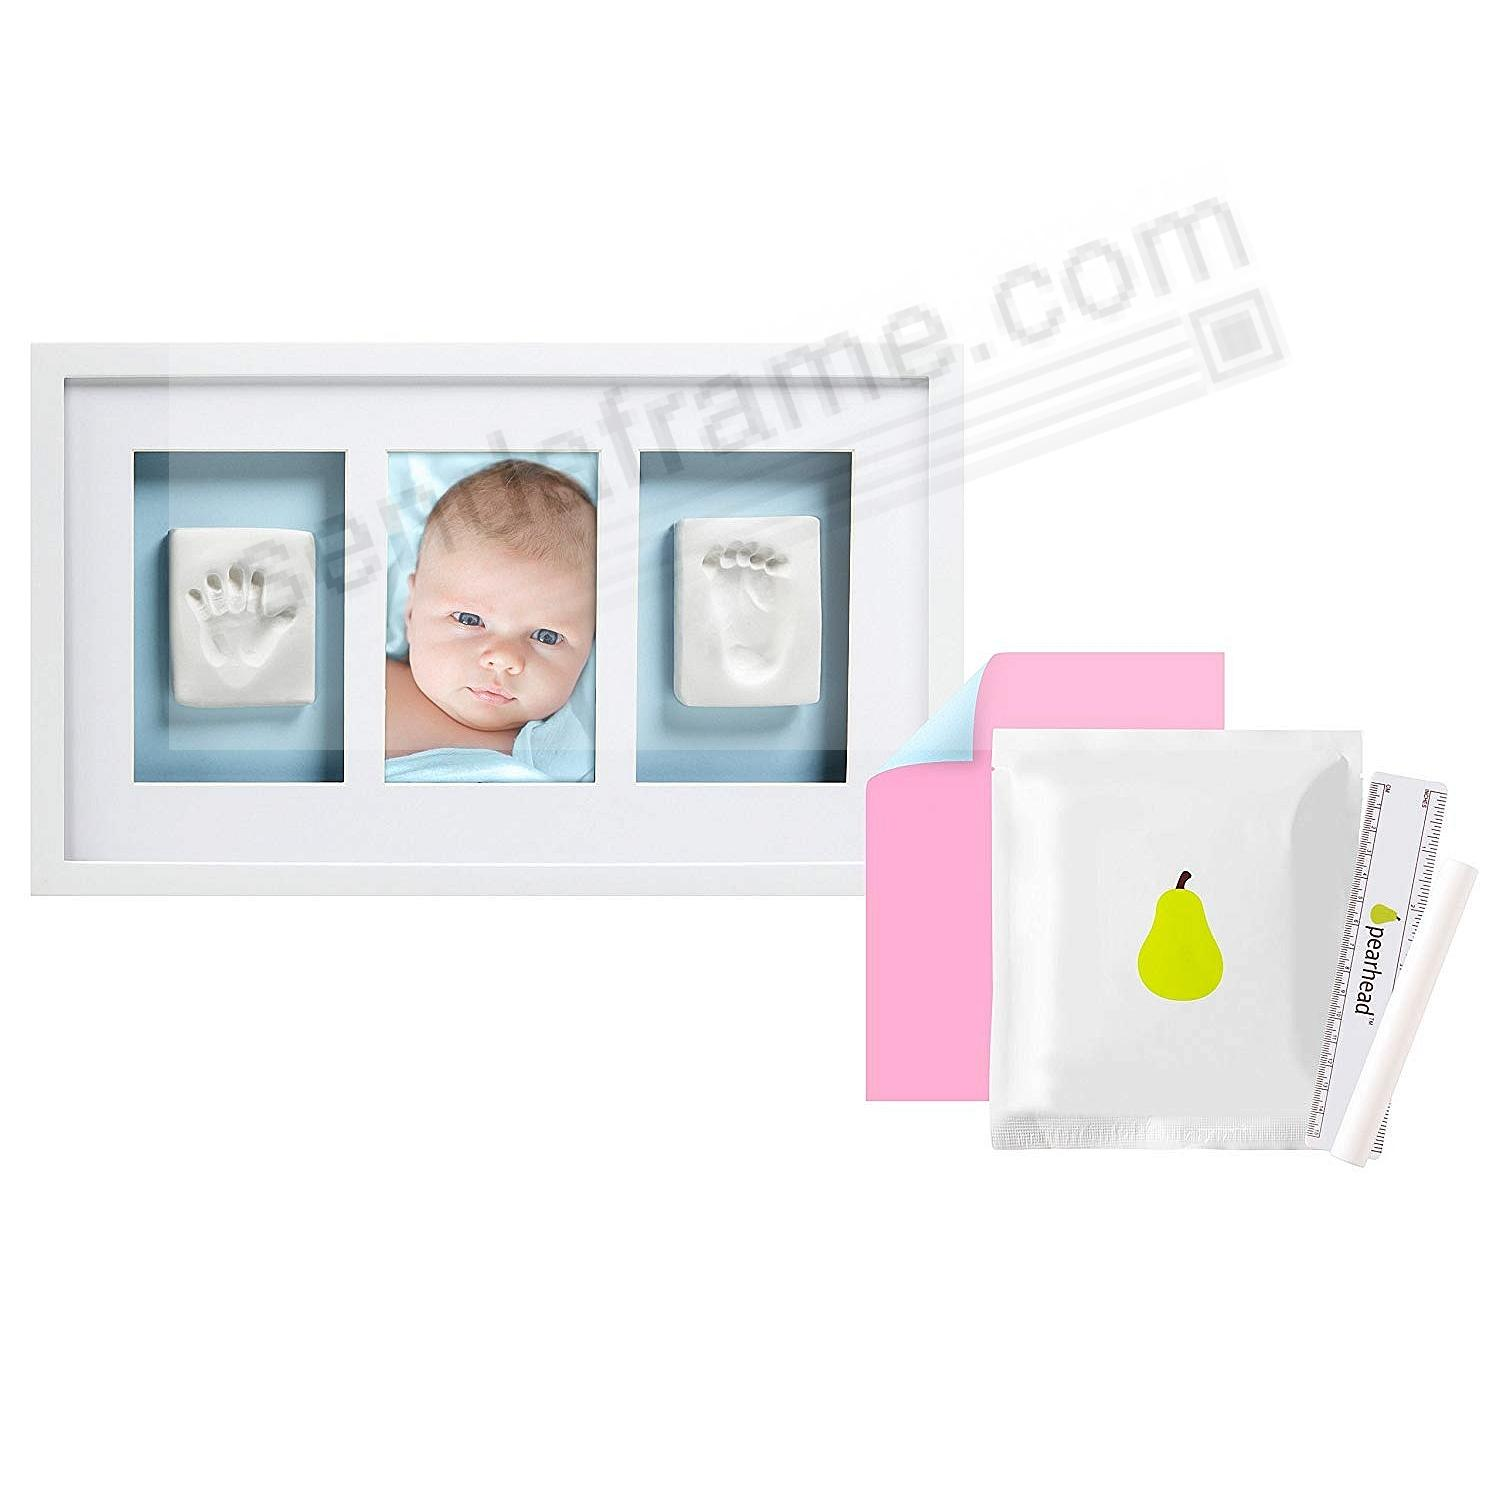 Pearhead® Baby Handprint and Footprint Deluxe Wall Frame + Impression Kit - White